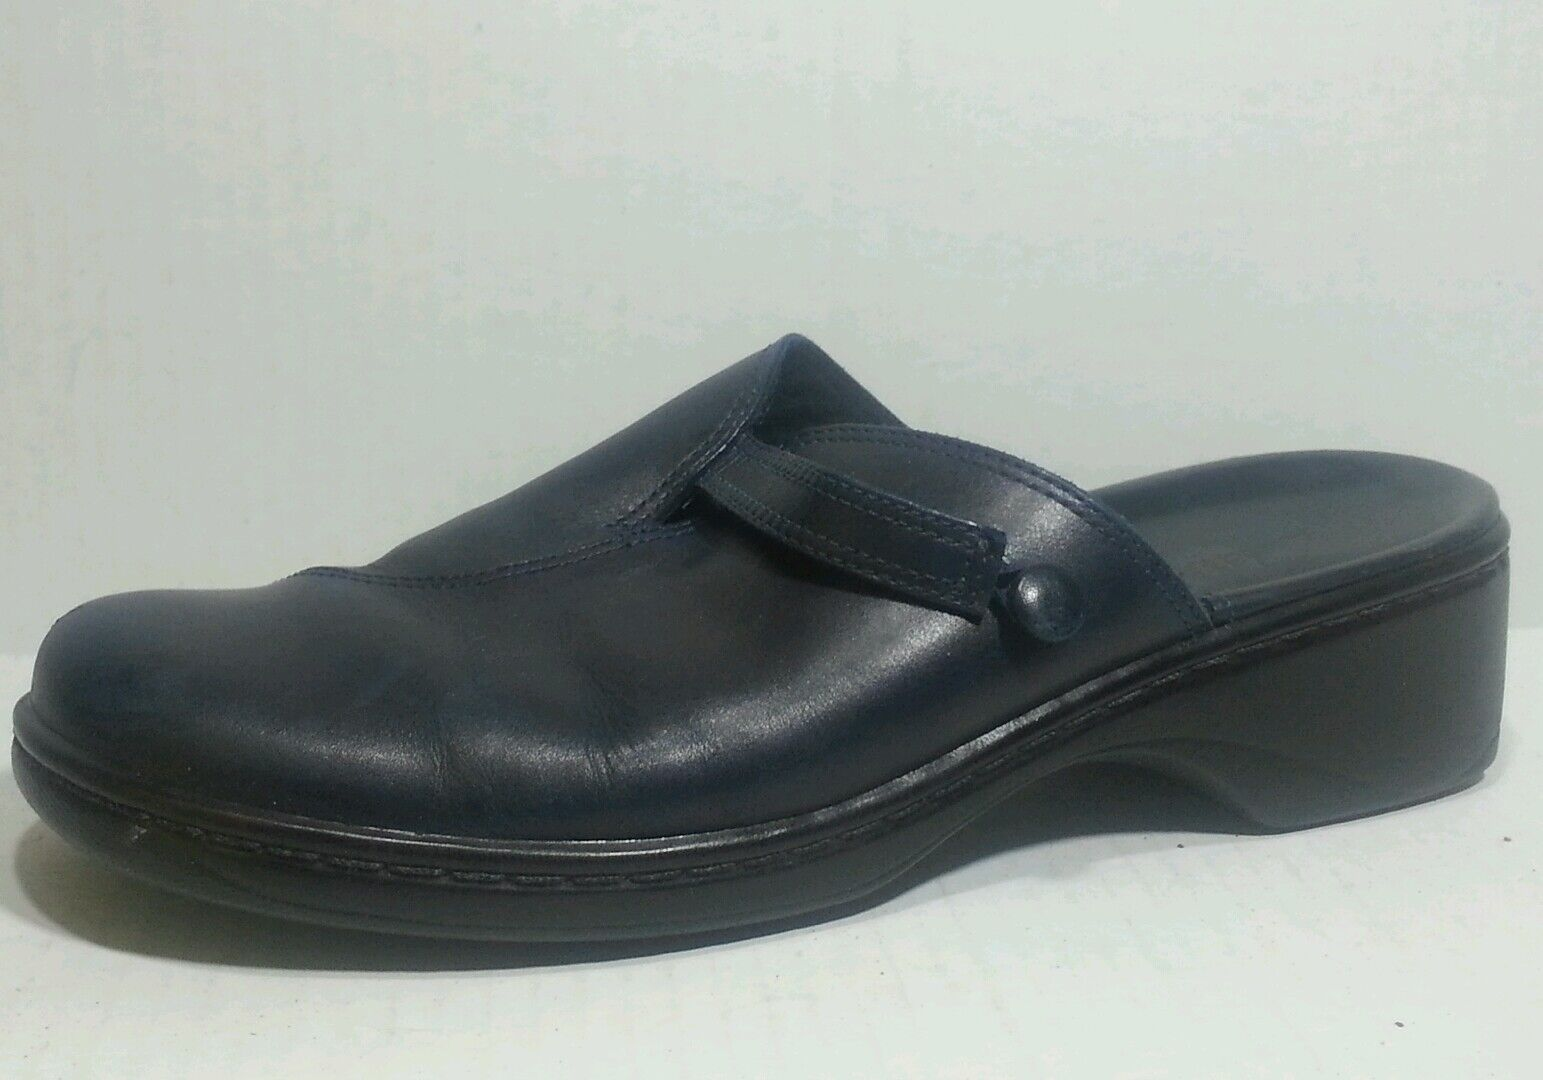 Clarks bluee Navy Mule Leather Wmn 8 M Casual Career Clog Work shoes 71417 Slip On